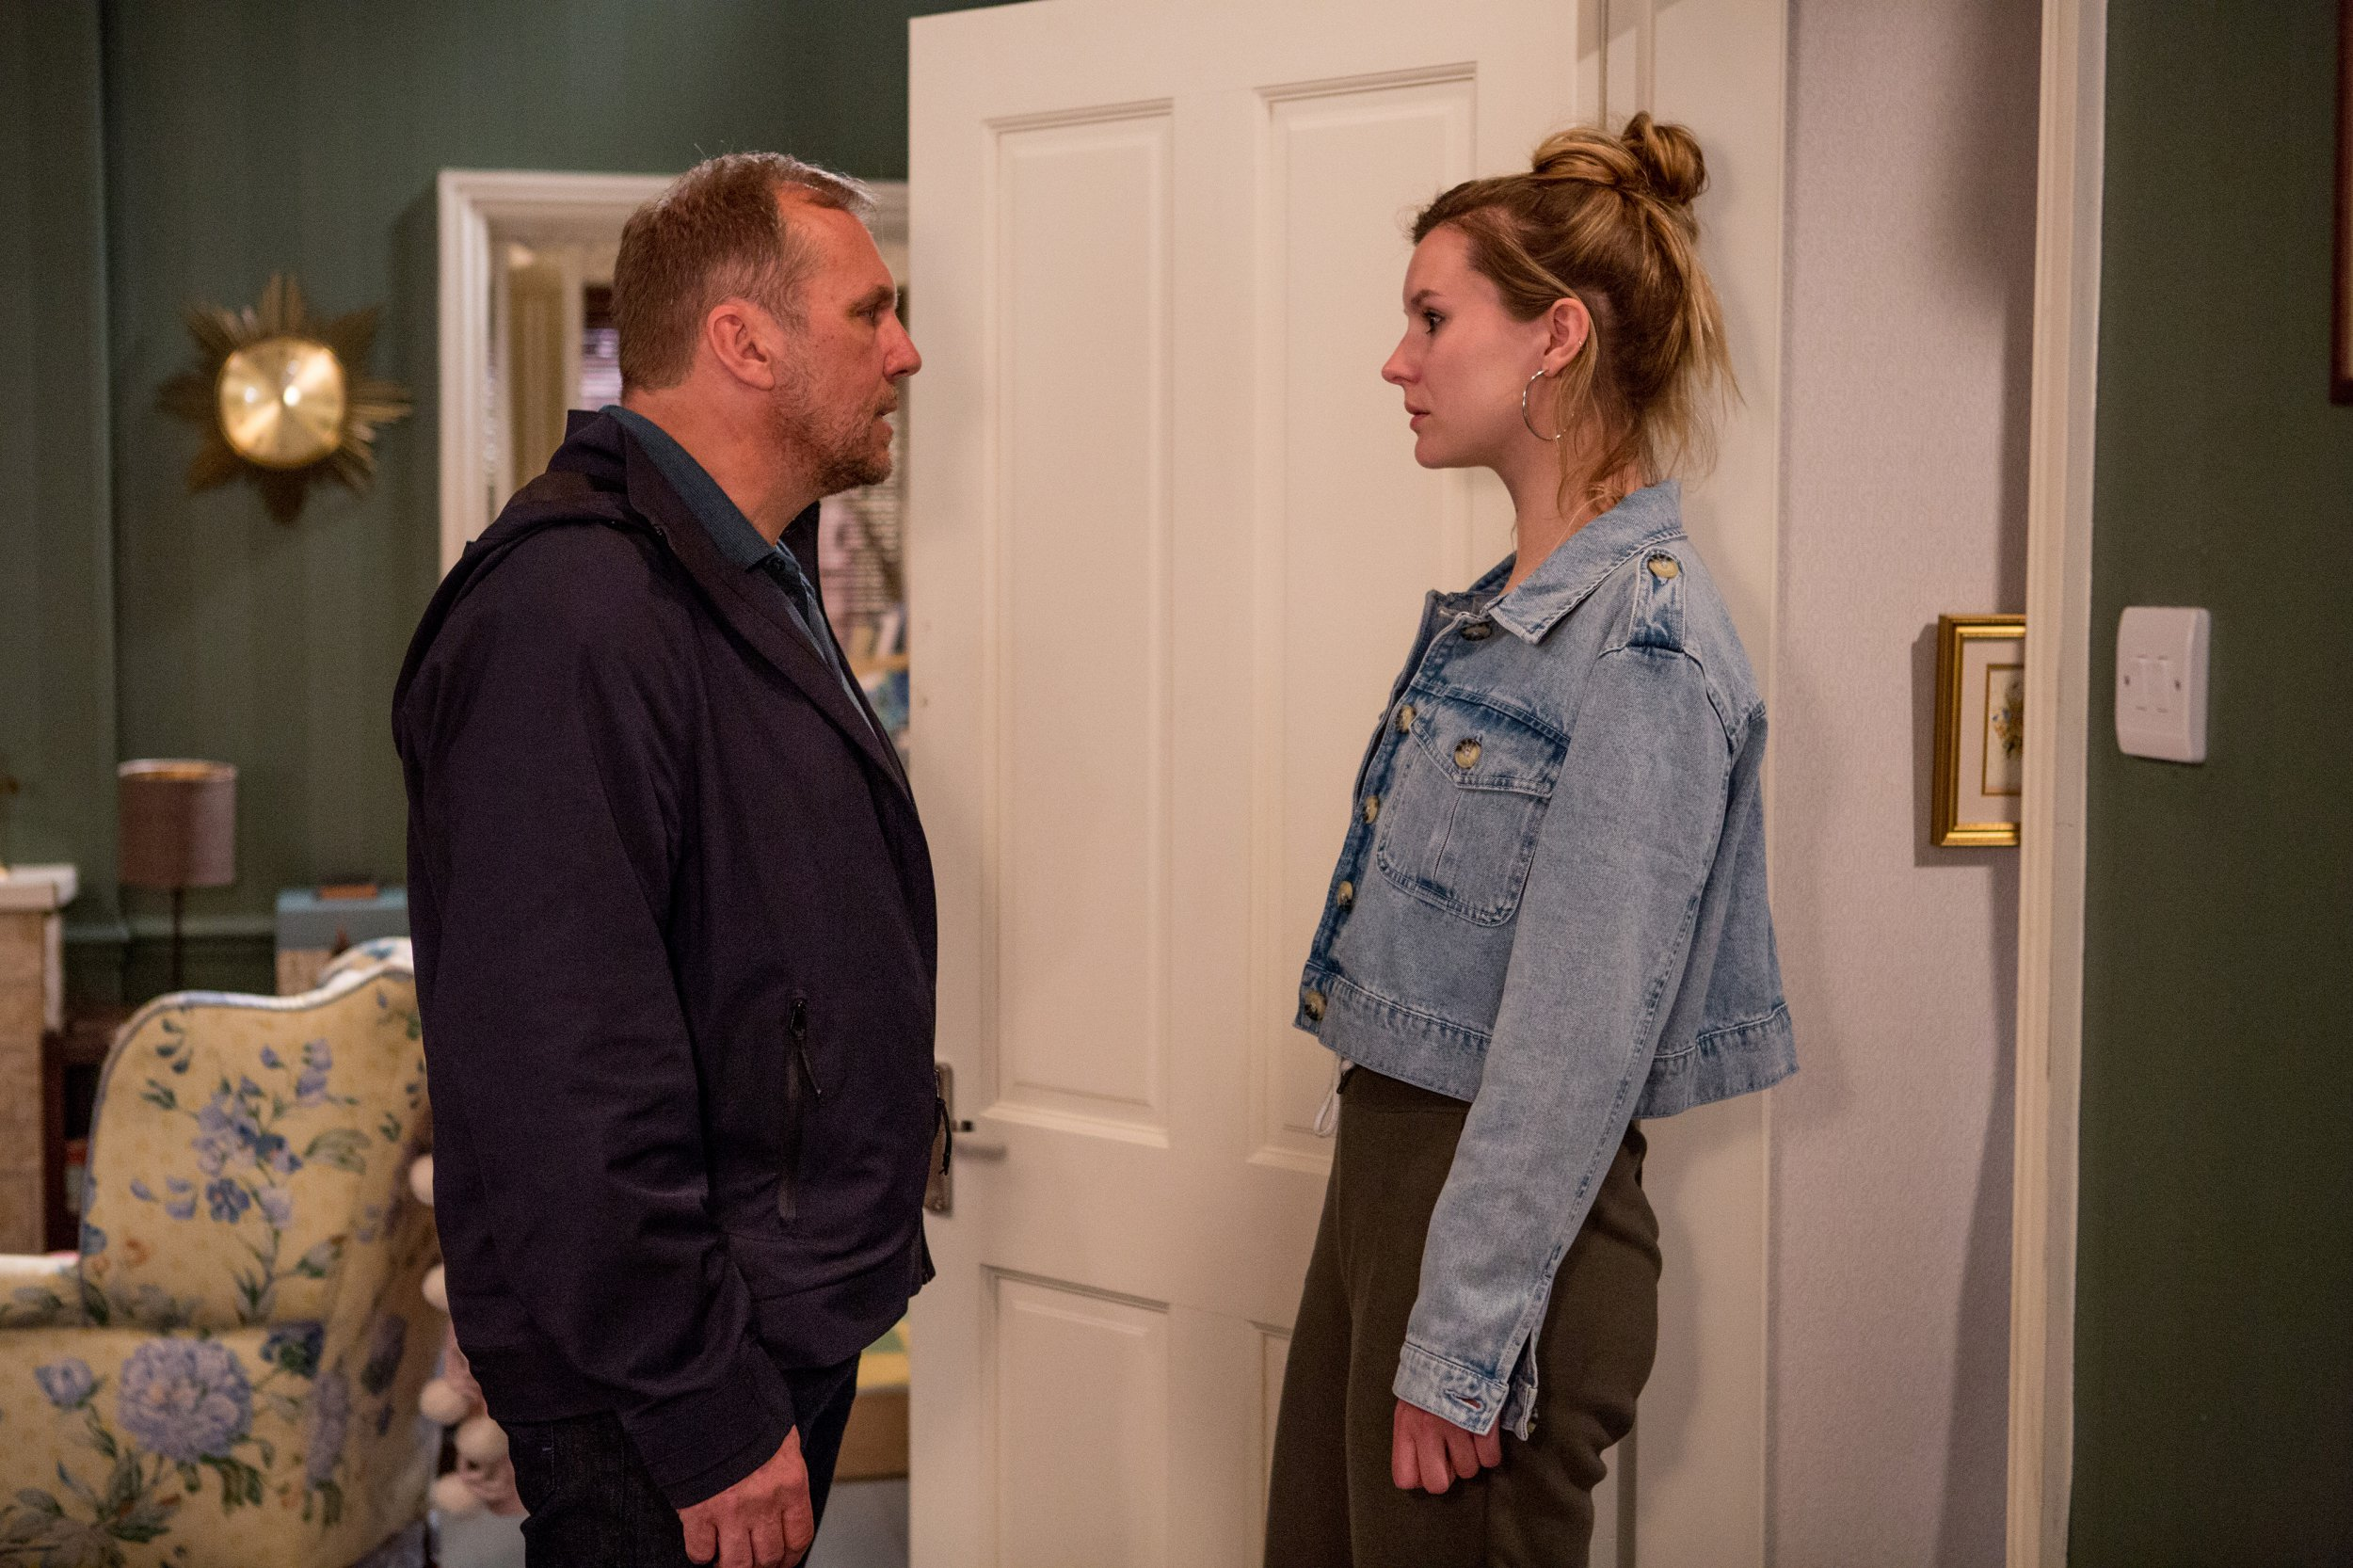 SEI_65074445 Emmerdale spoilers: Dean Andrew reveals Will is 'more dangerous than Cain Dingle' and is out for devastating revenge